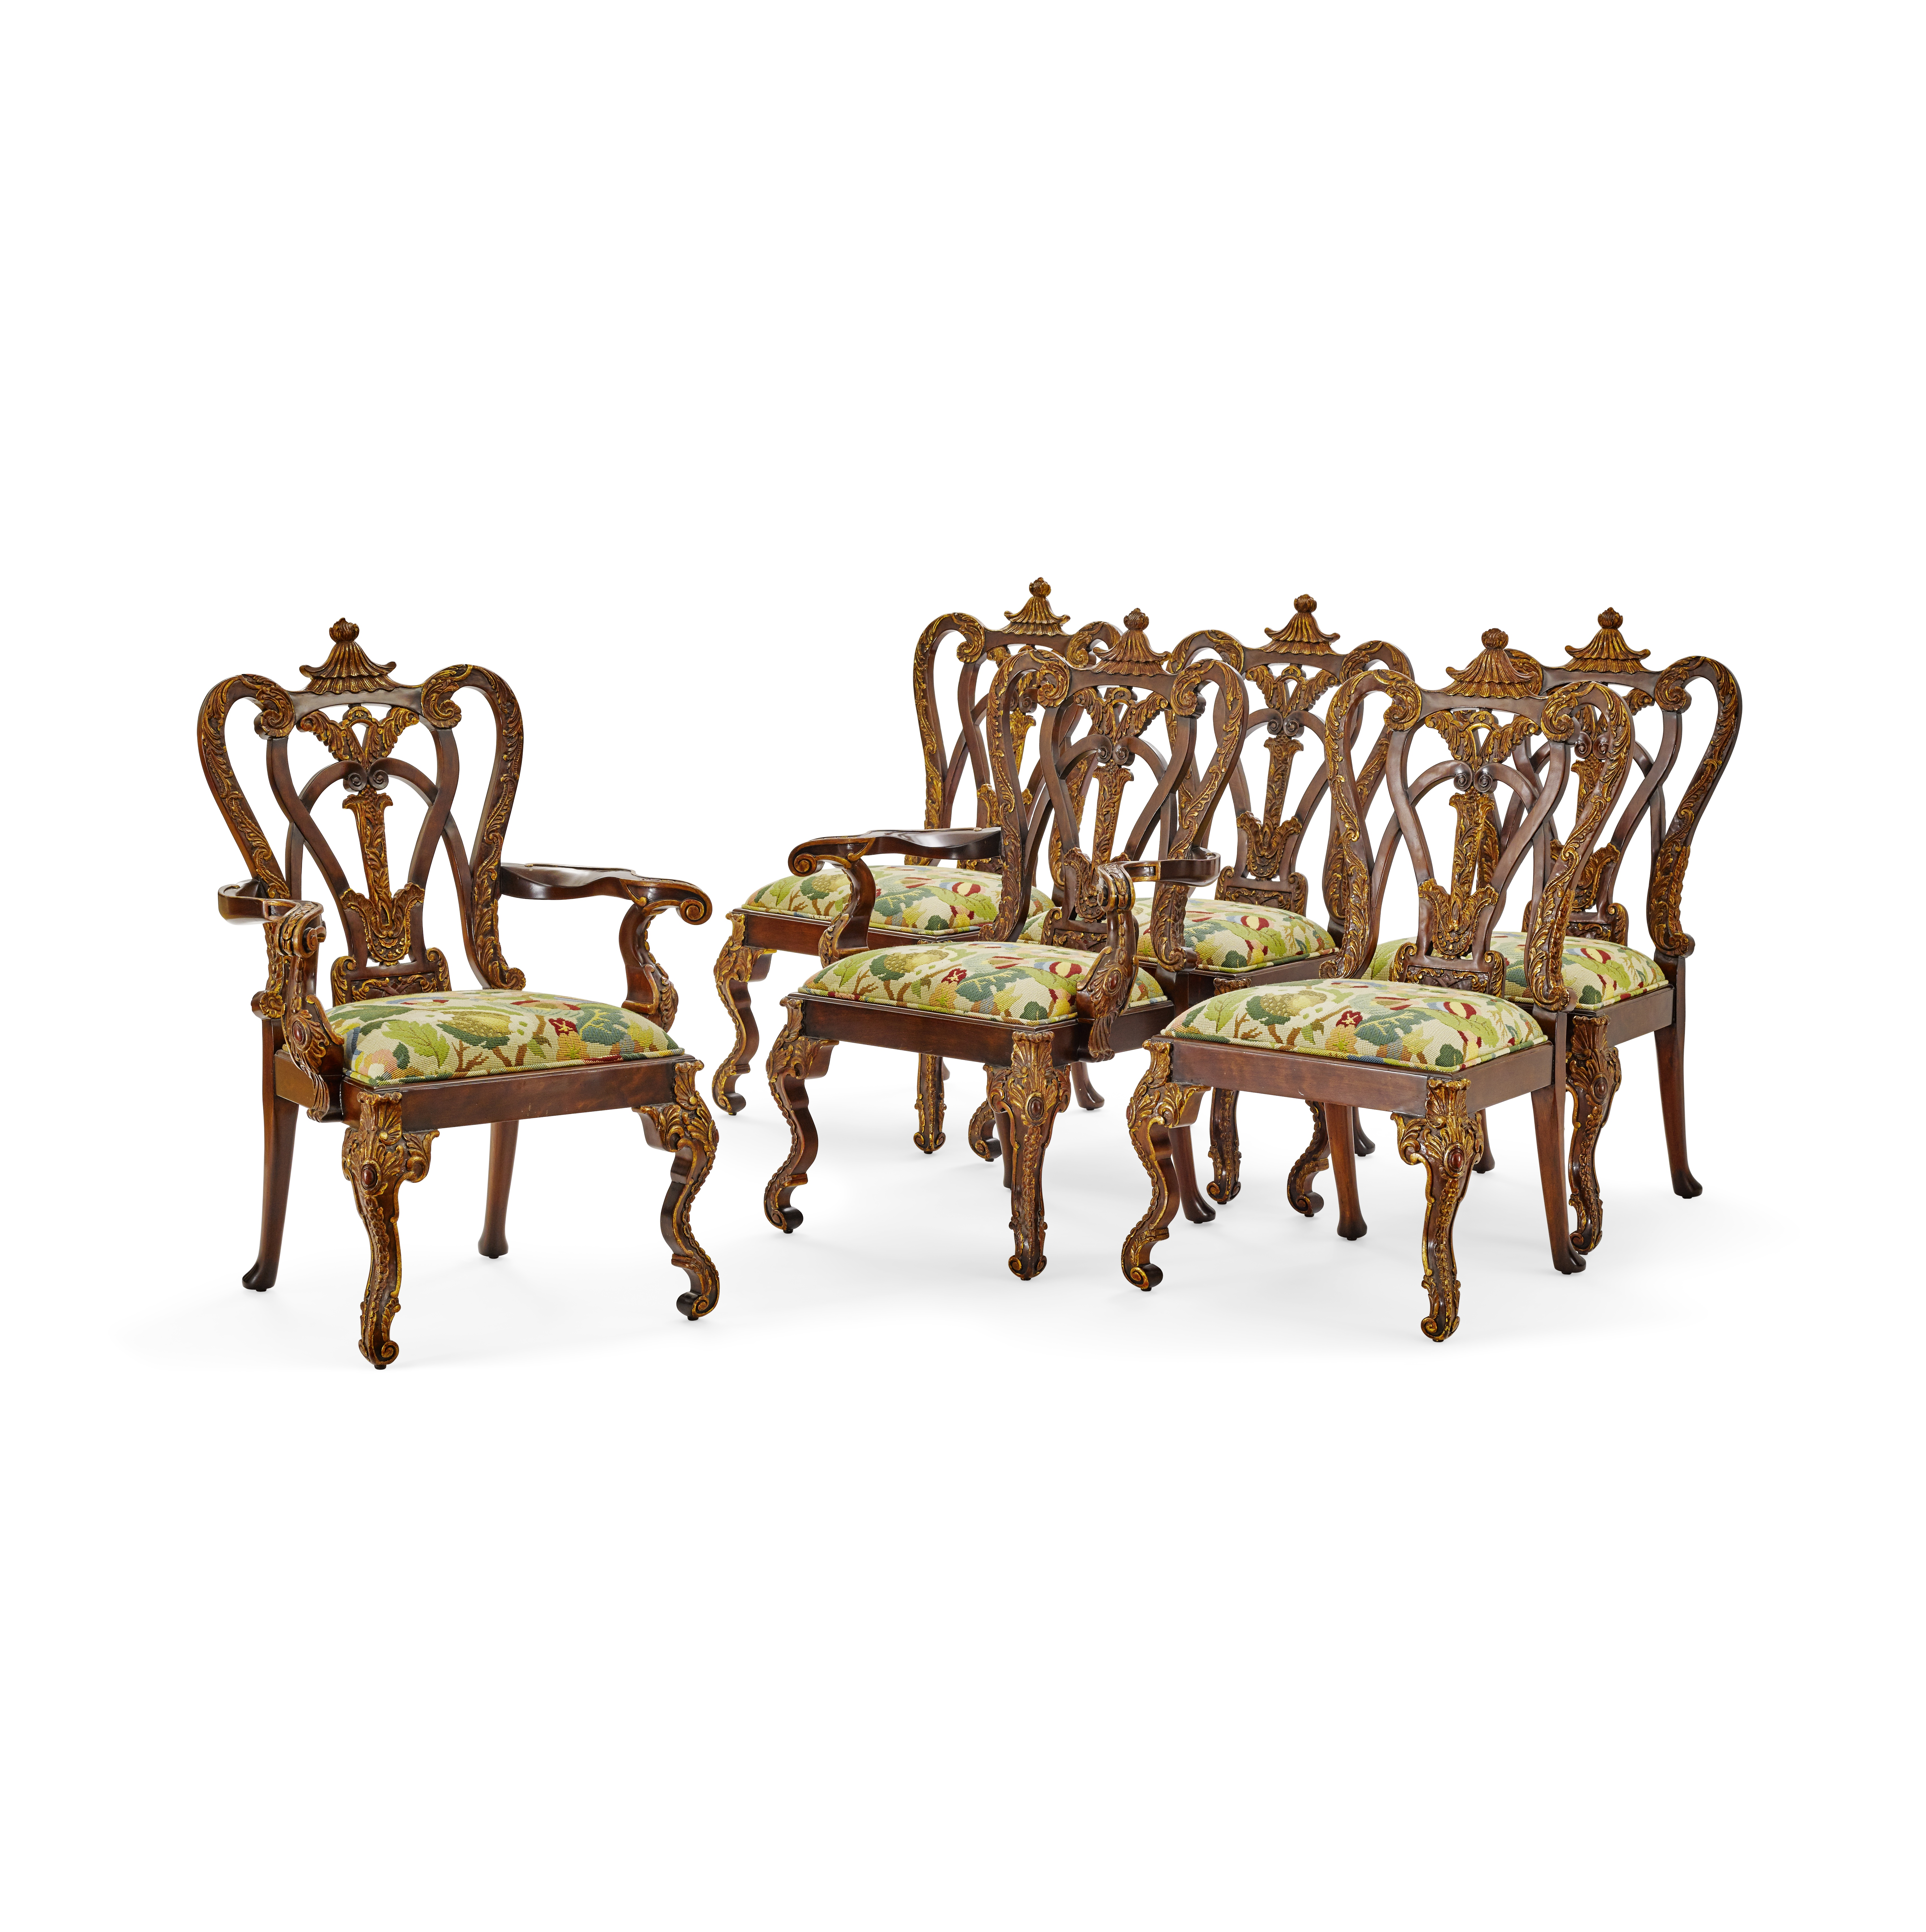 Lot 144 - A Set of Eight George II Style Grimsthorpe Castle Mahogany Dining Chairs 20th century